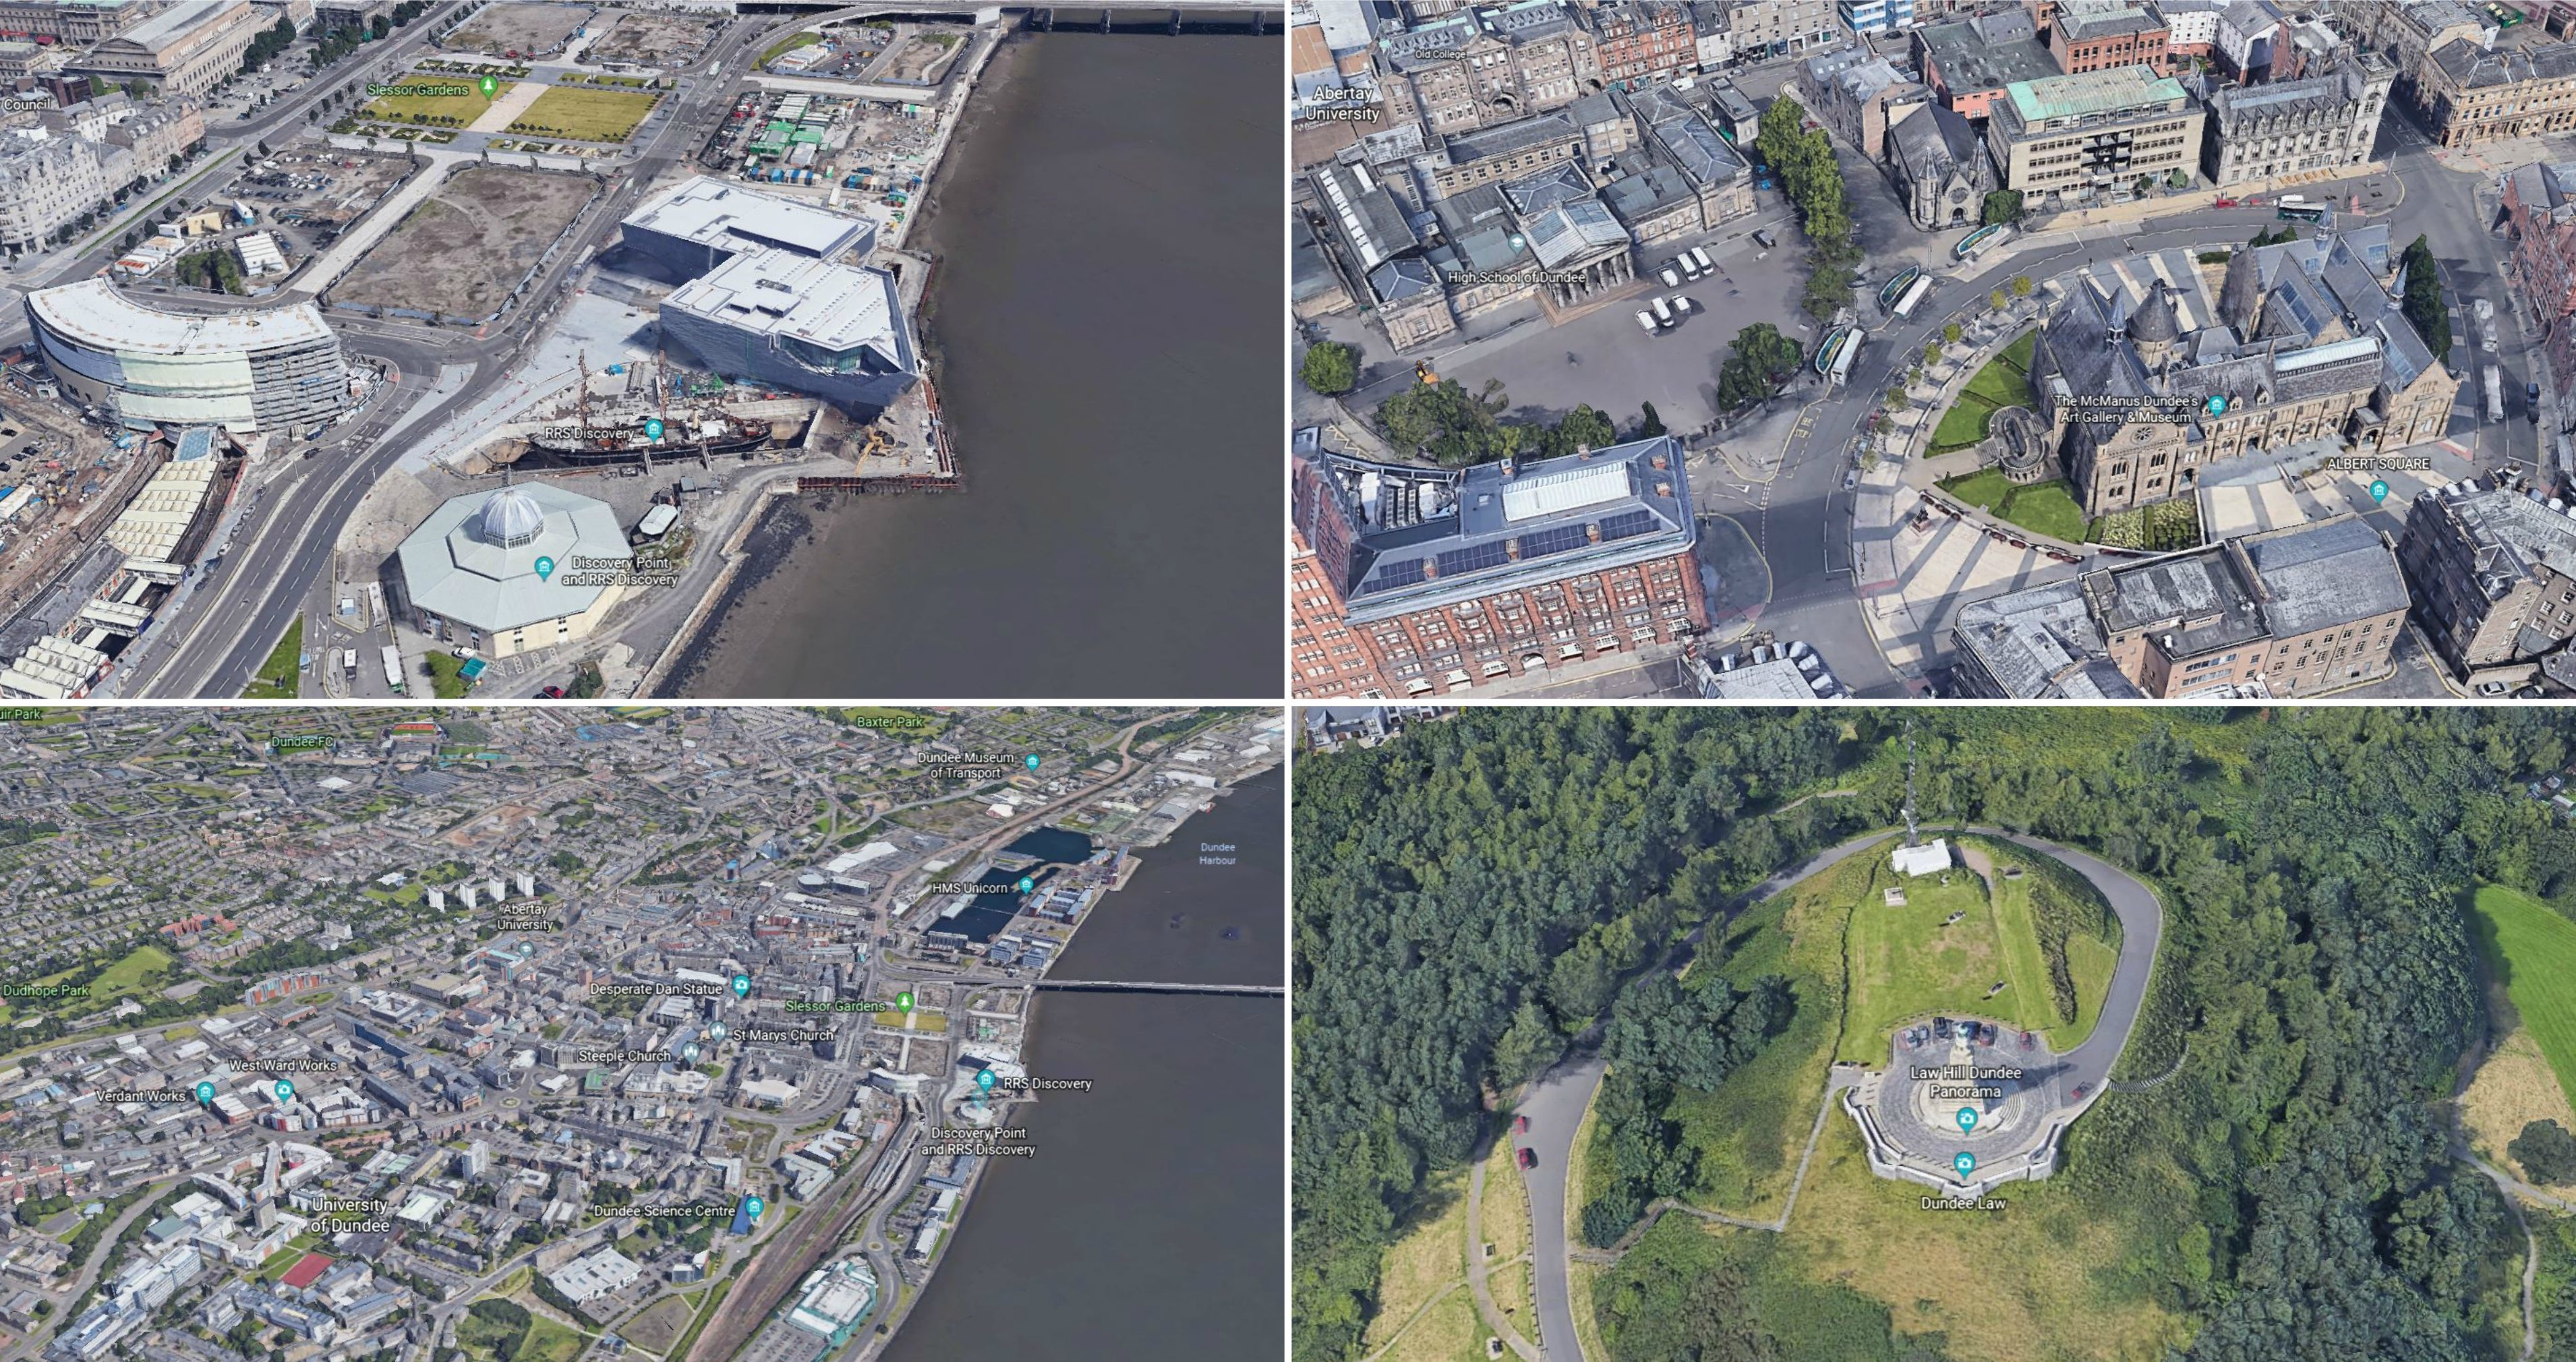 How Dundee looks on Google Earth in 3D.